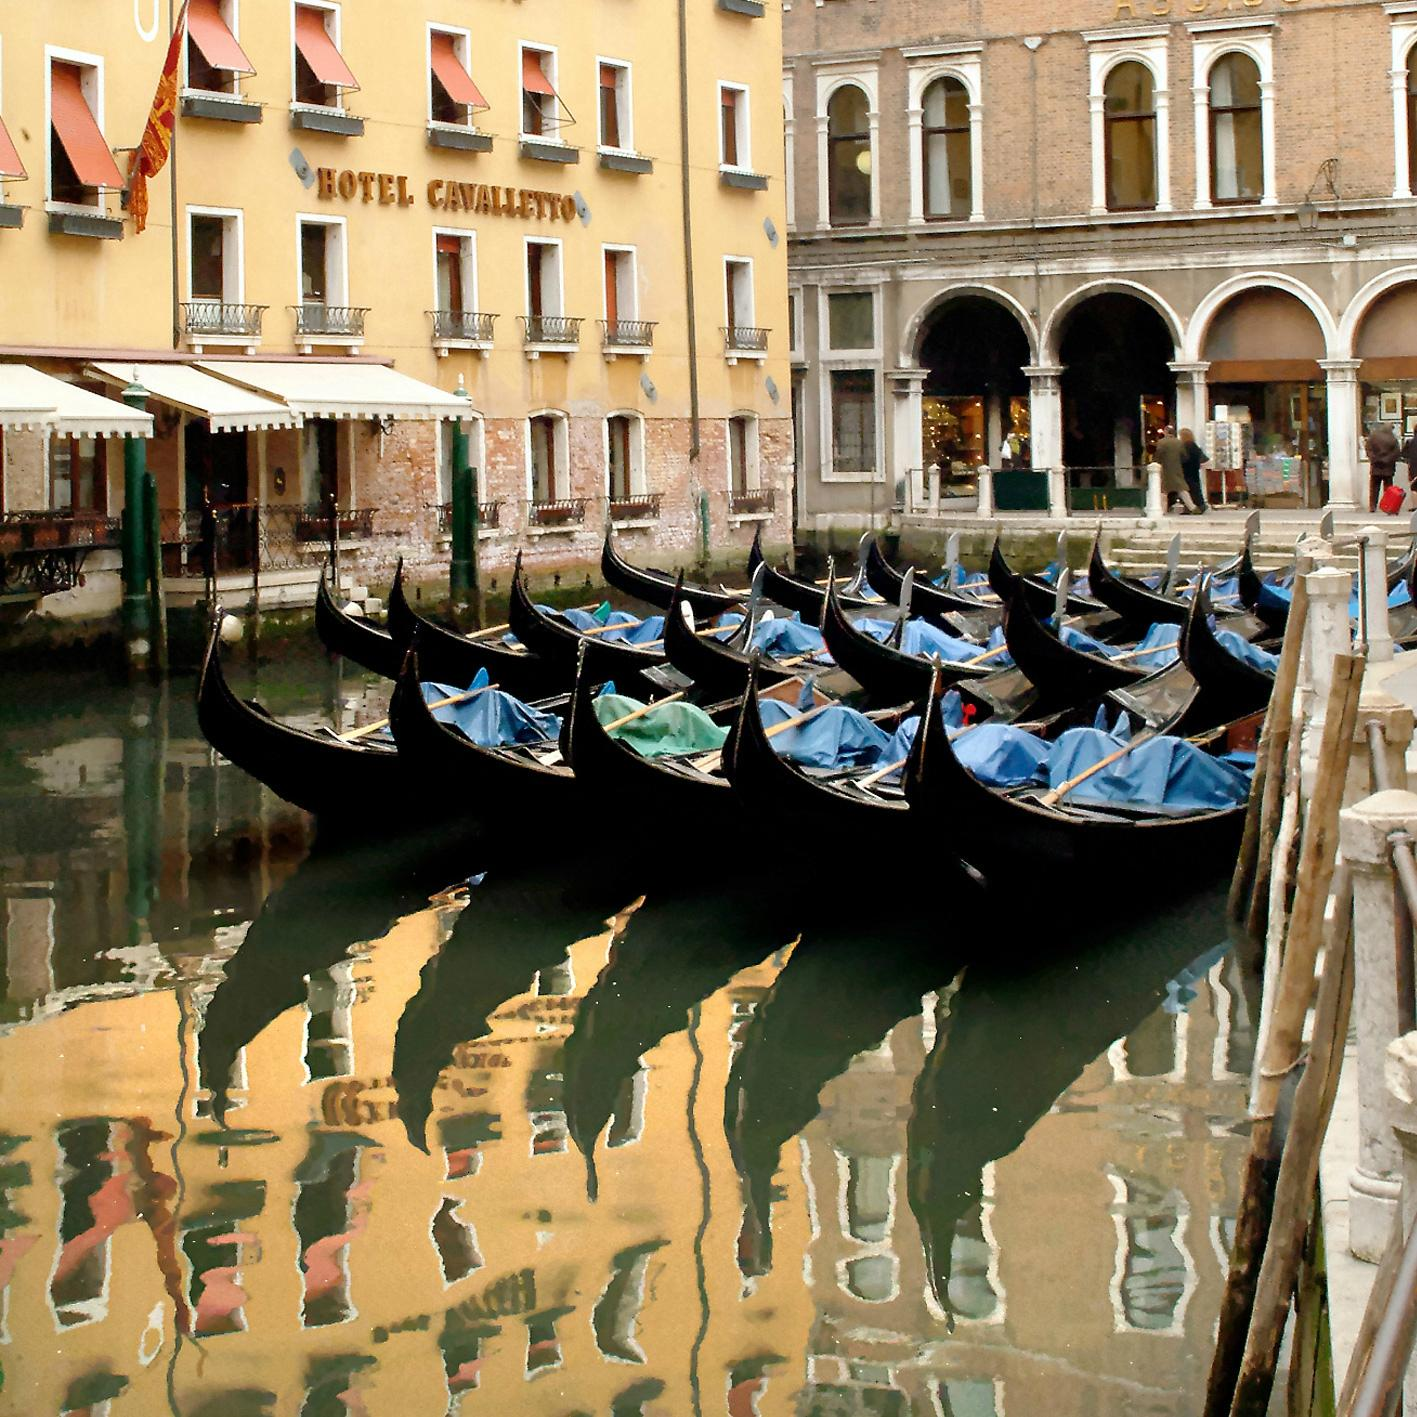 Michelangelo Photographic Agency - Photography Service in Gondola